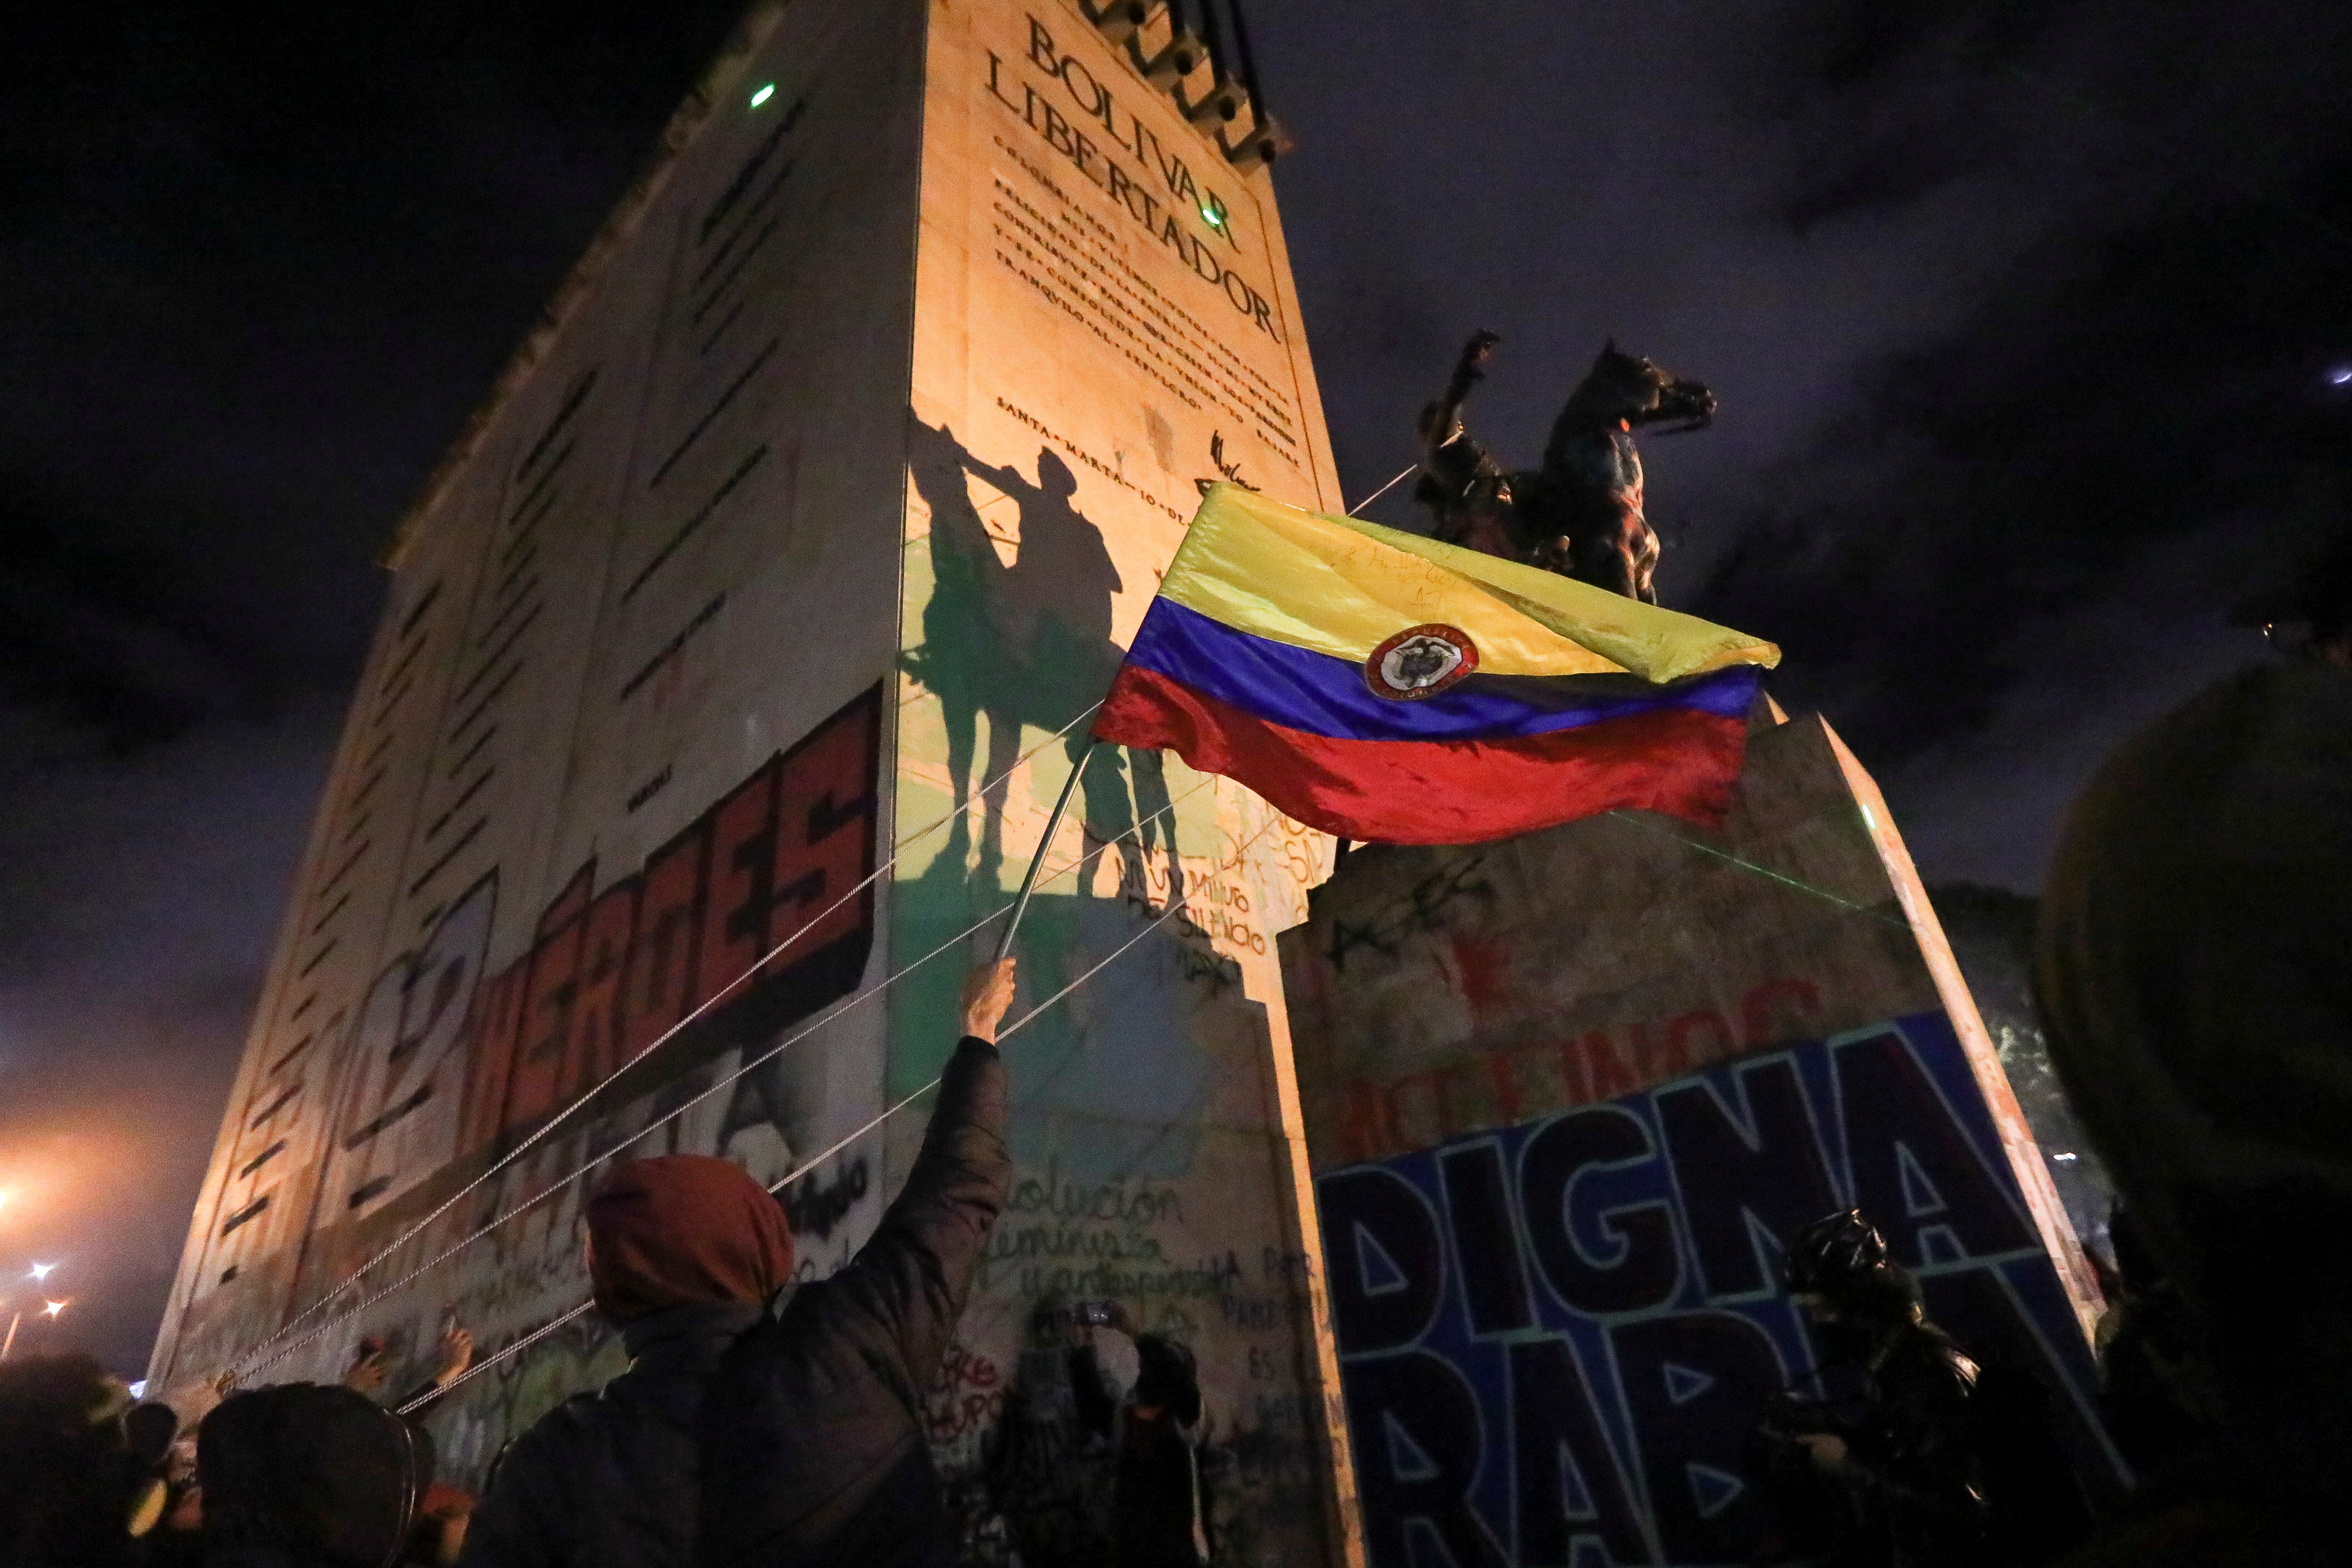 People try to topple the statue of South American independence leader Simon Bolivar during a protest against sexual assault by the police and the excess of public force against peaceful protests, in Bogota, Colombia, May 15, 2021. REUTERS/Luisa Gonzalez